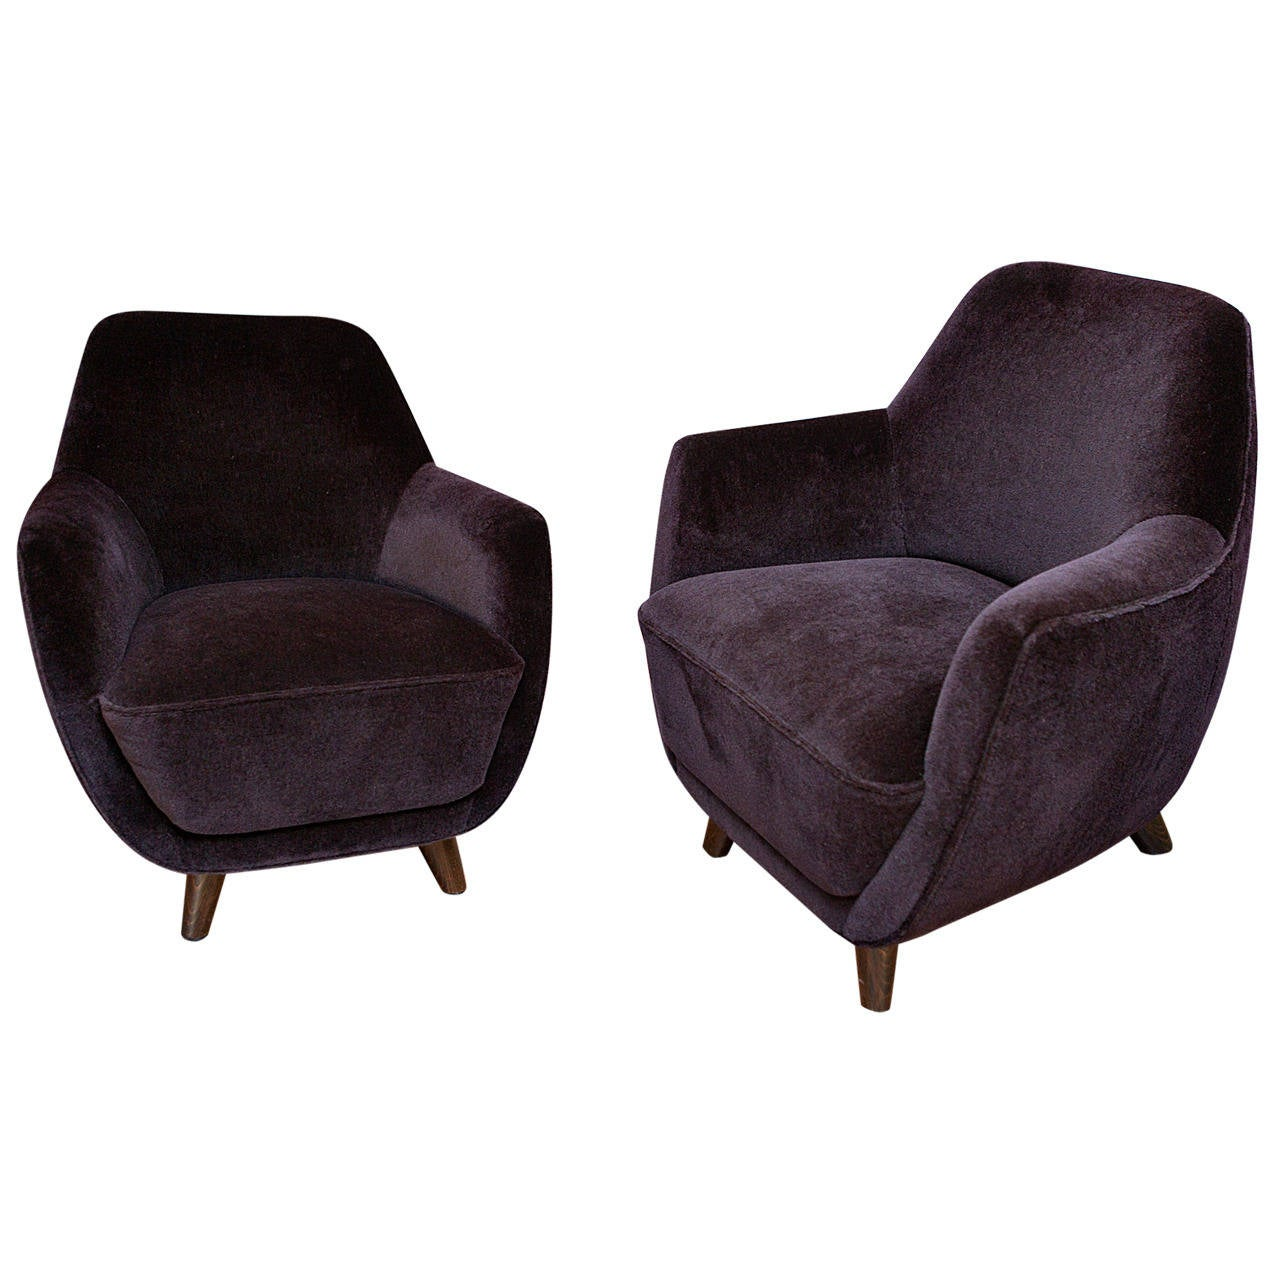 Pair of Chairs by Gio Ponti, Italy For Sale